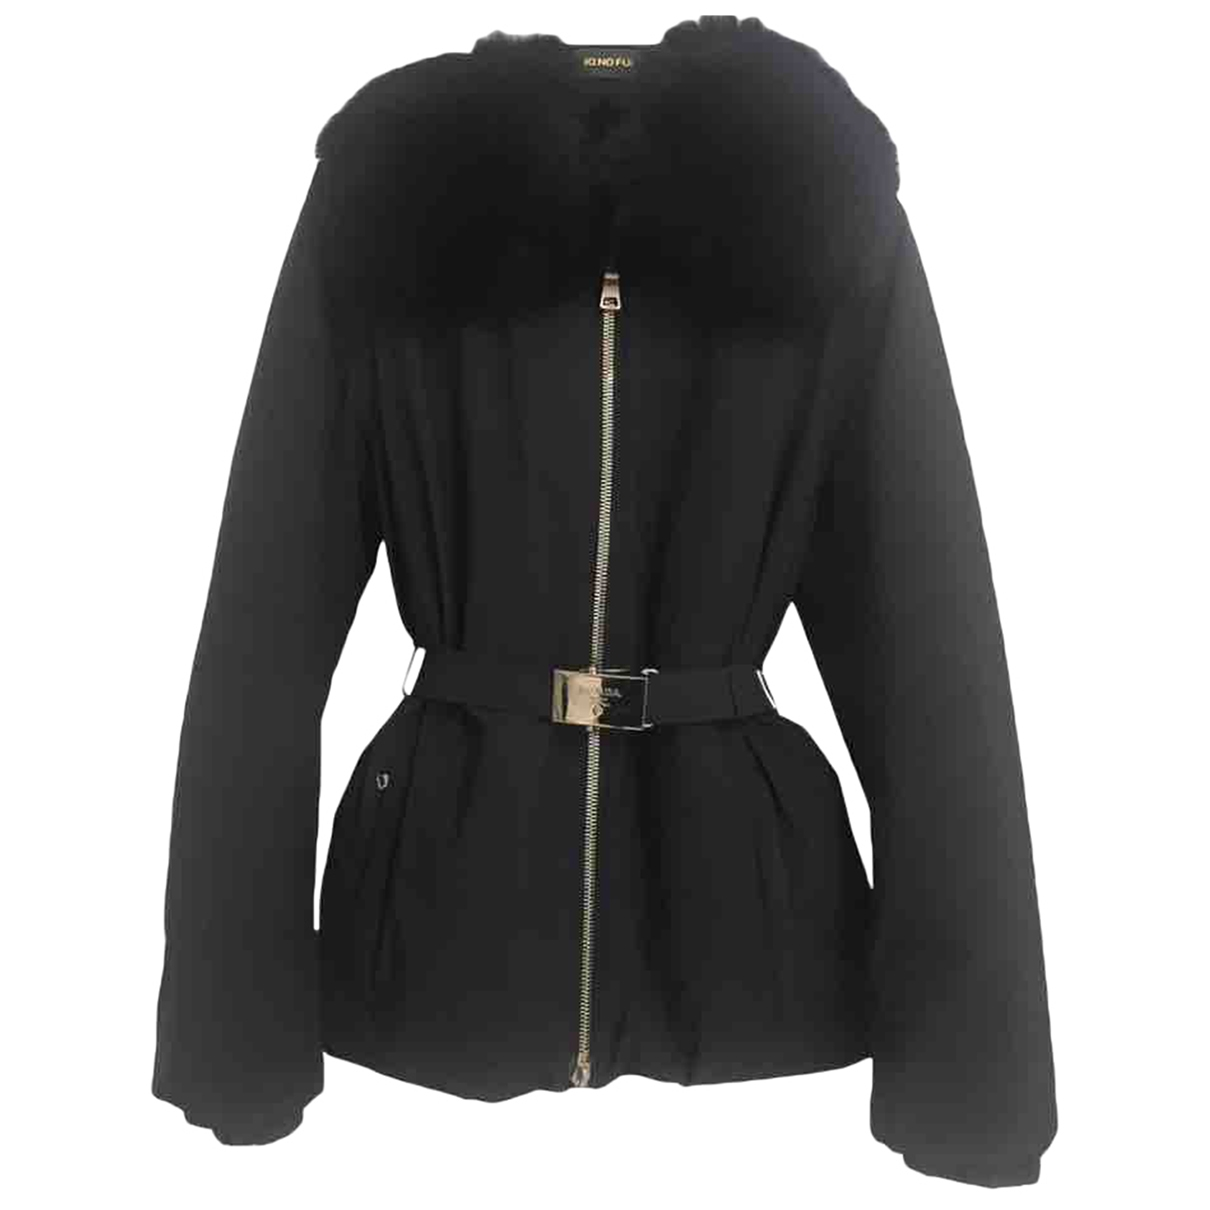 Prada \N Black jacket for Women 42 IT